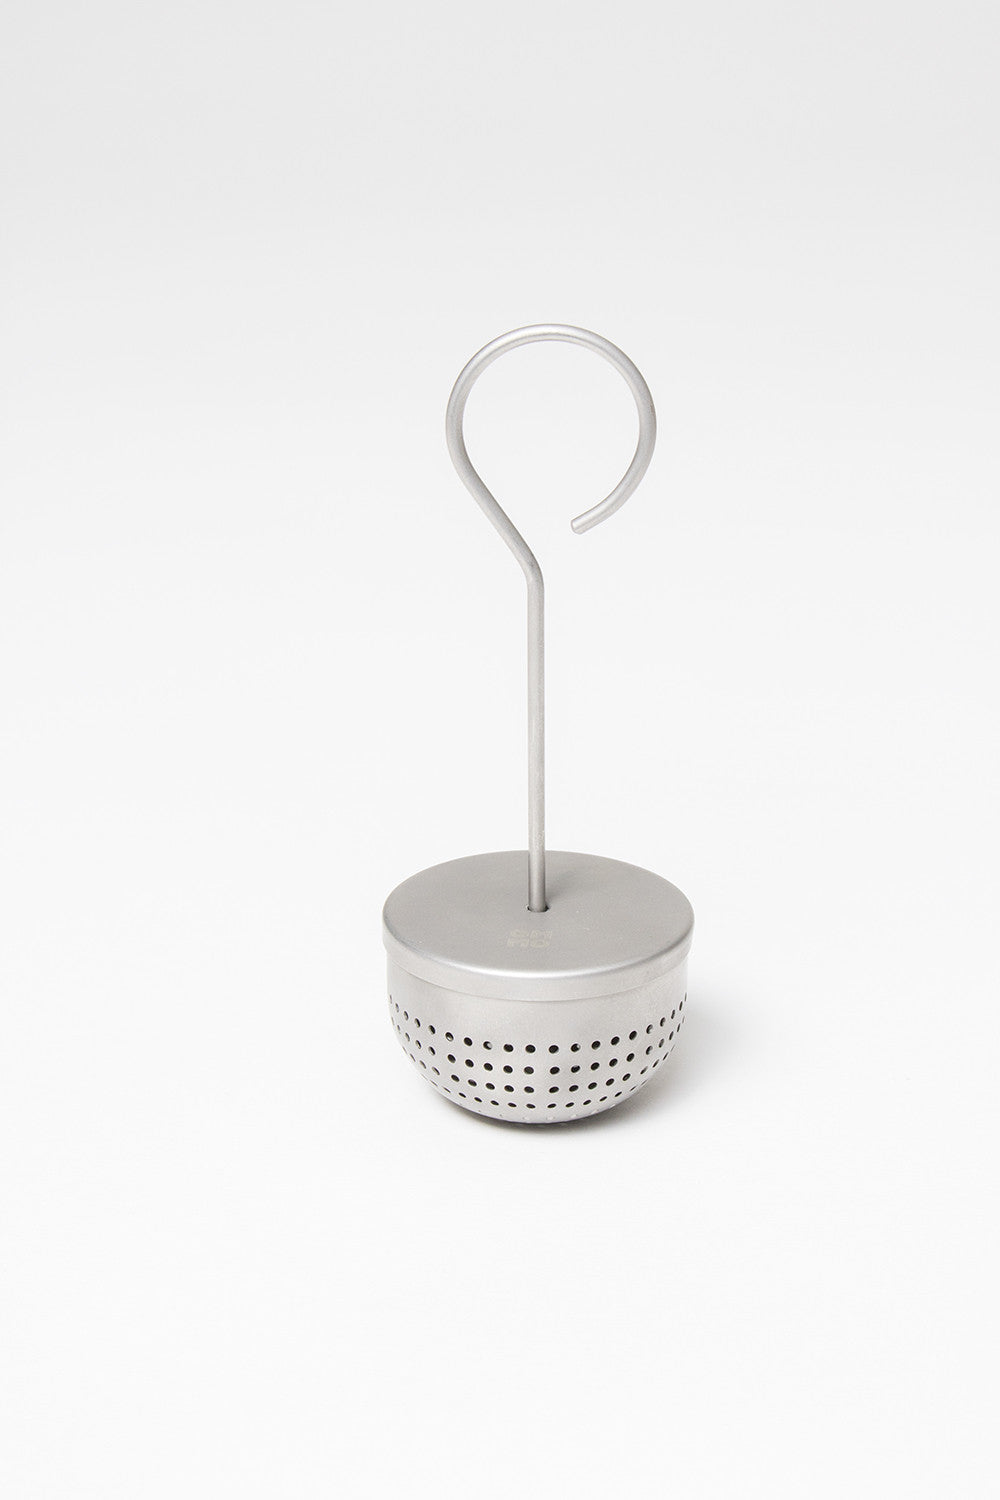 OMMO TEA INFUSER ROUND SHAPE - Eclectic Cool